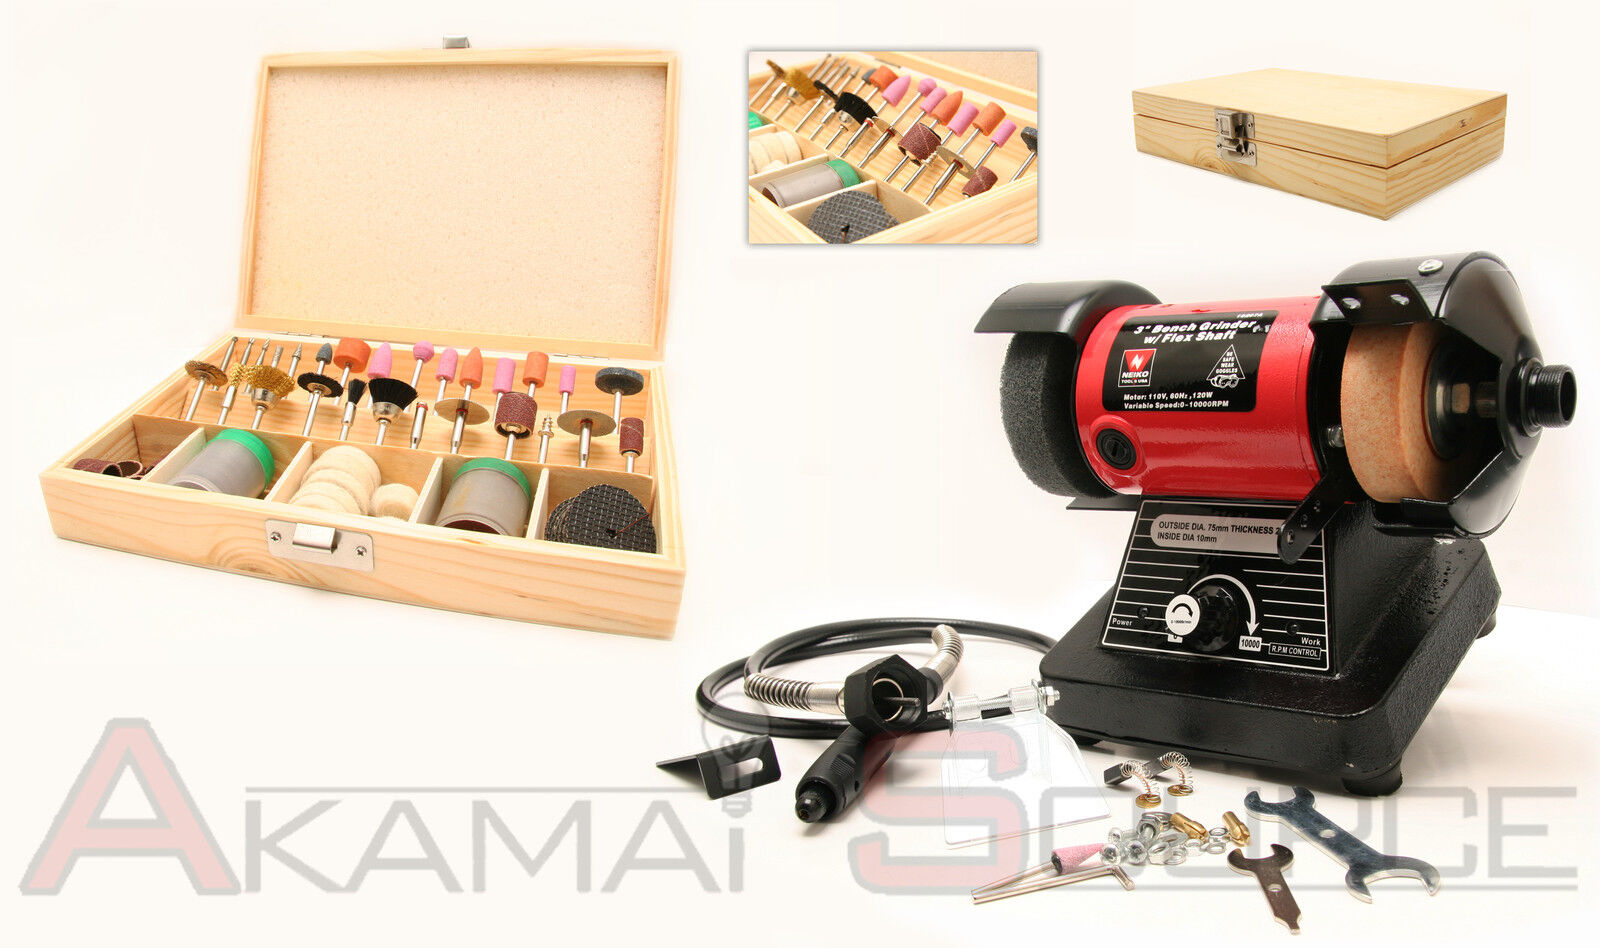 Combo 3 Mini Bench Grinder W/ 1/8 Flex Shaft Rotary Grinding Tool + 100pc Kit